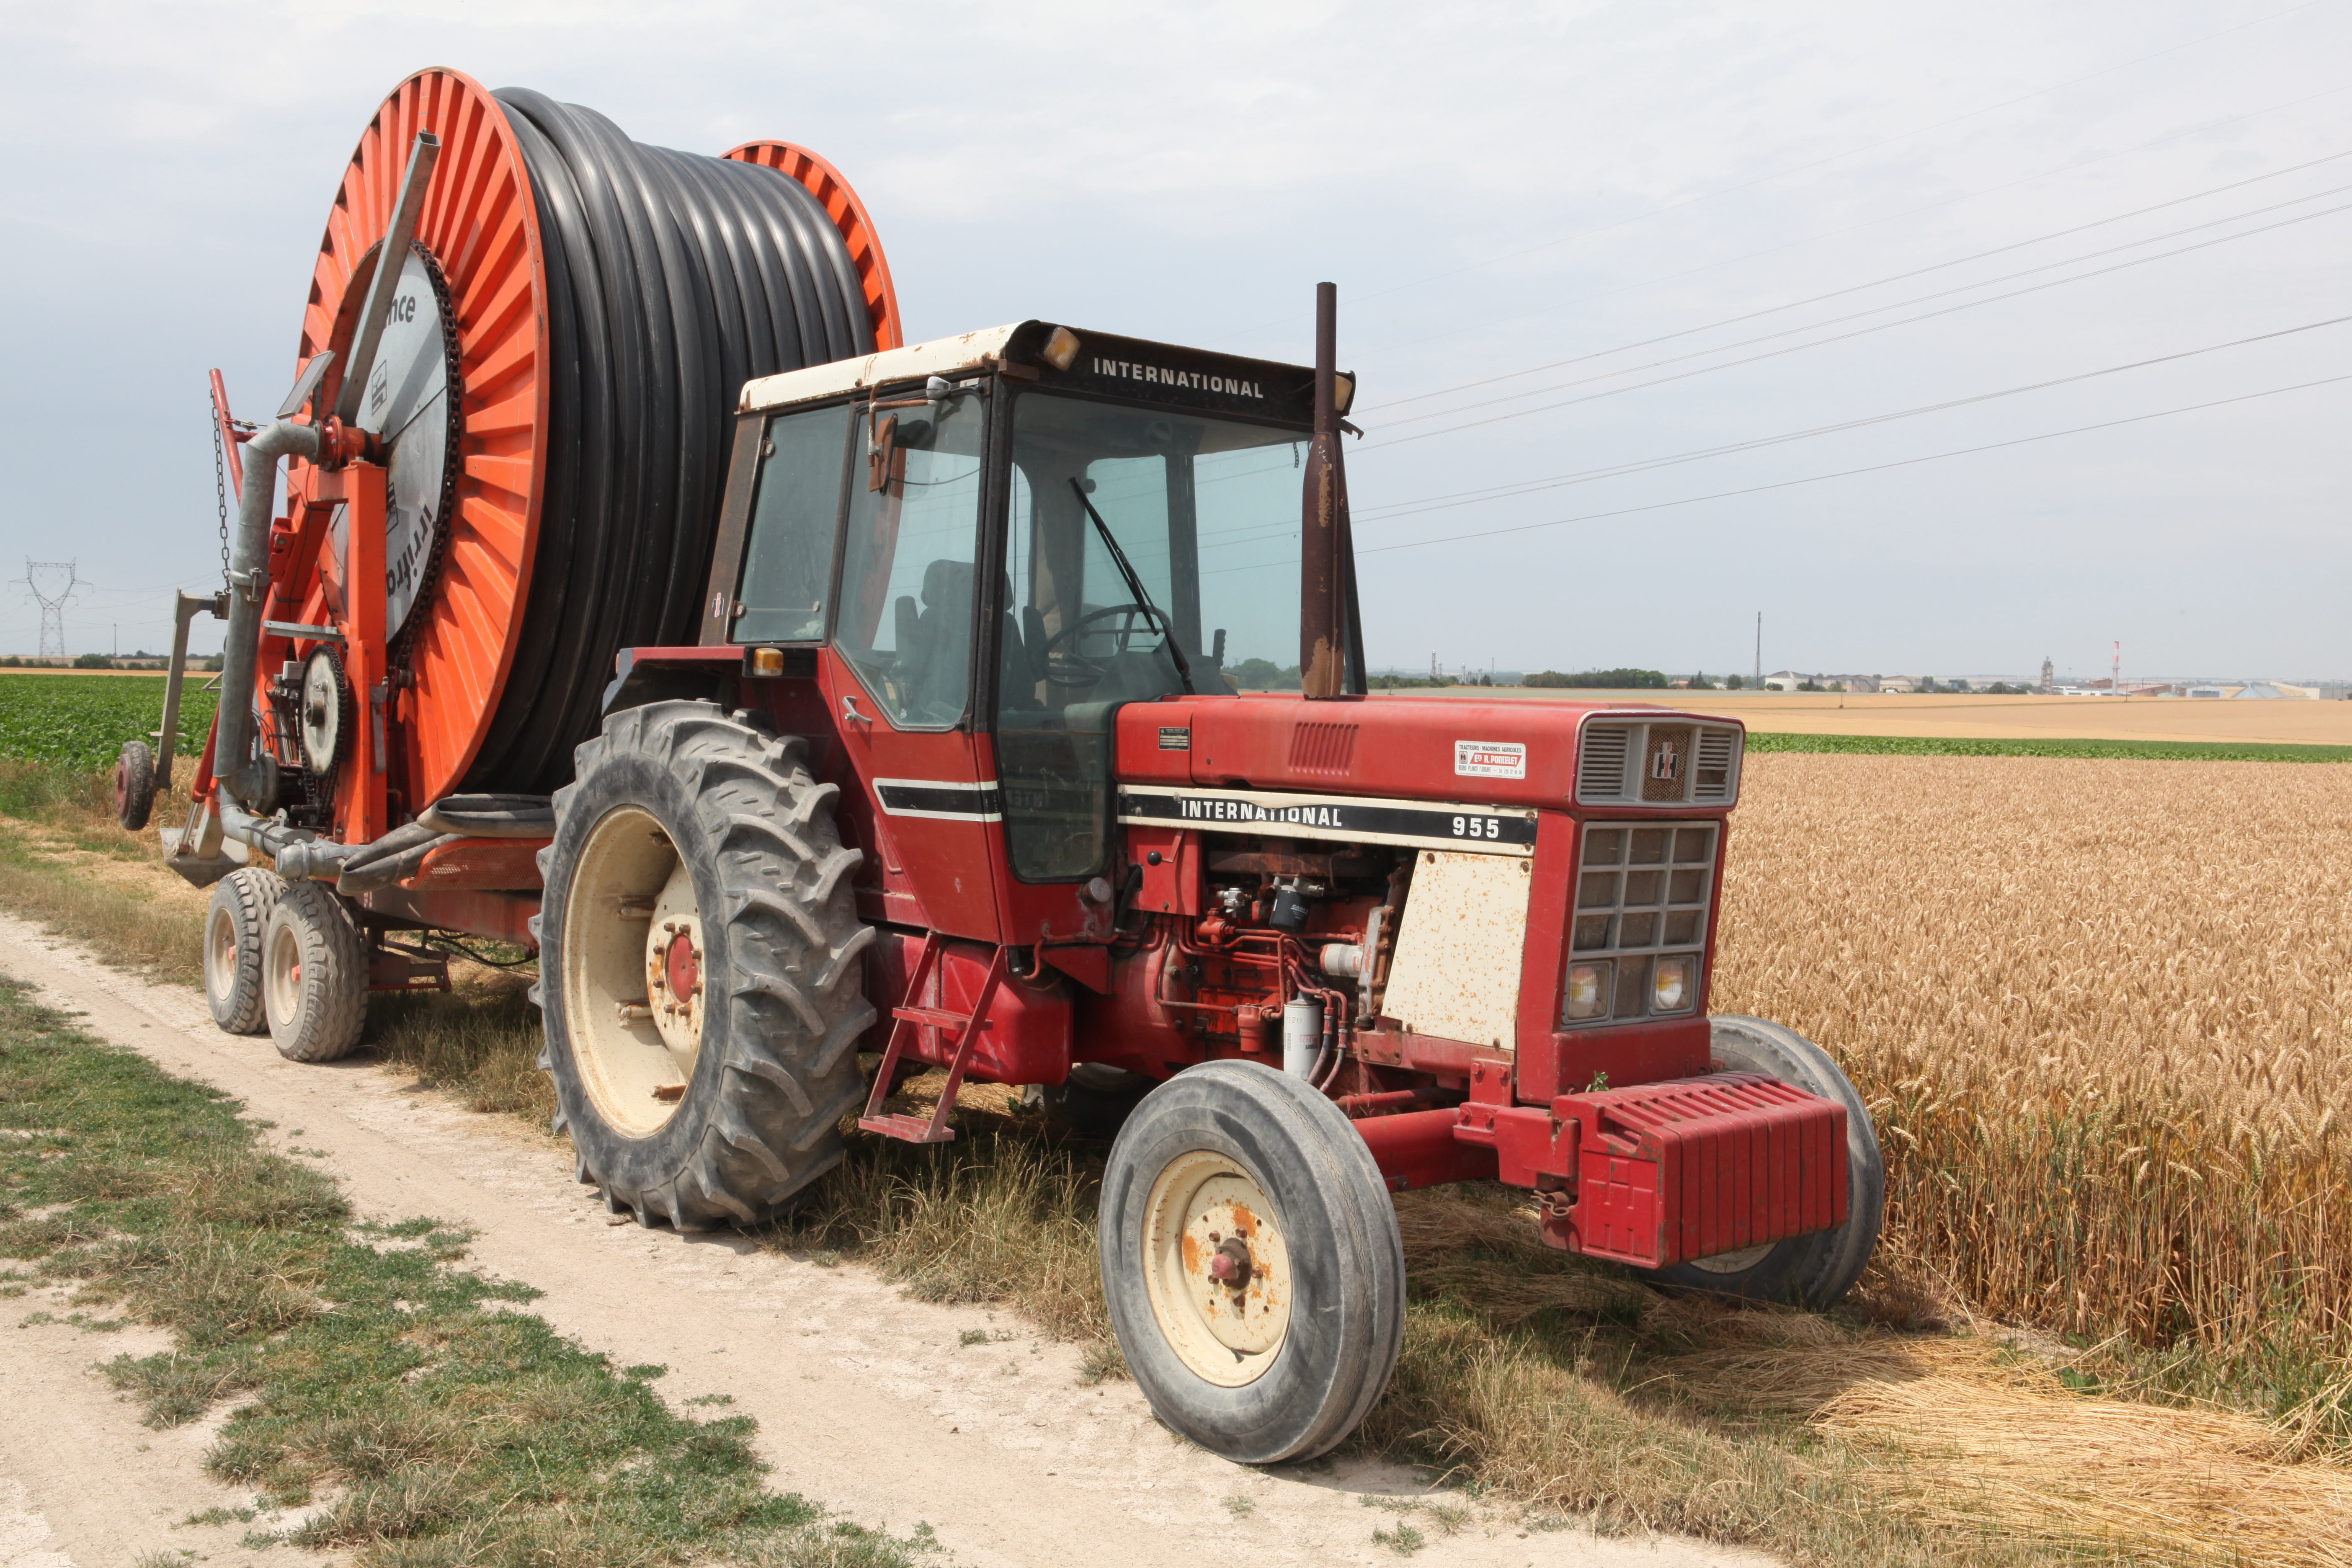 File:International Harvester 955 (1).jpg